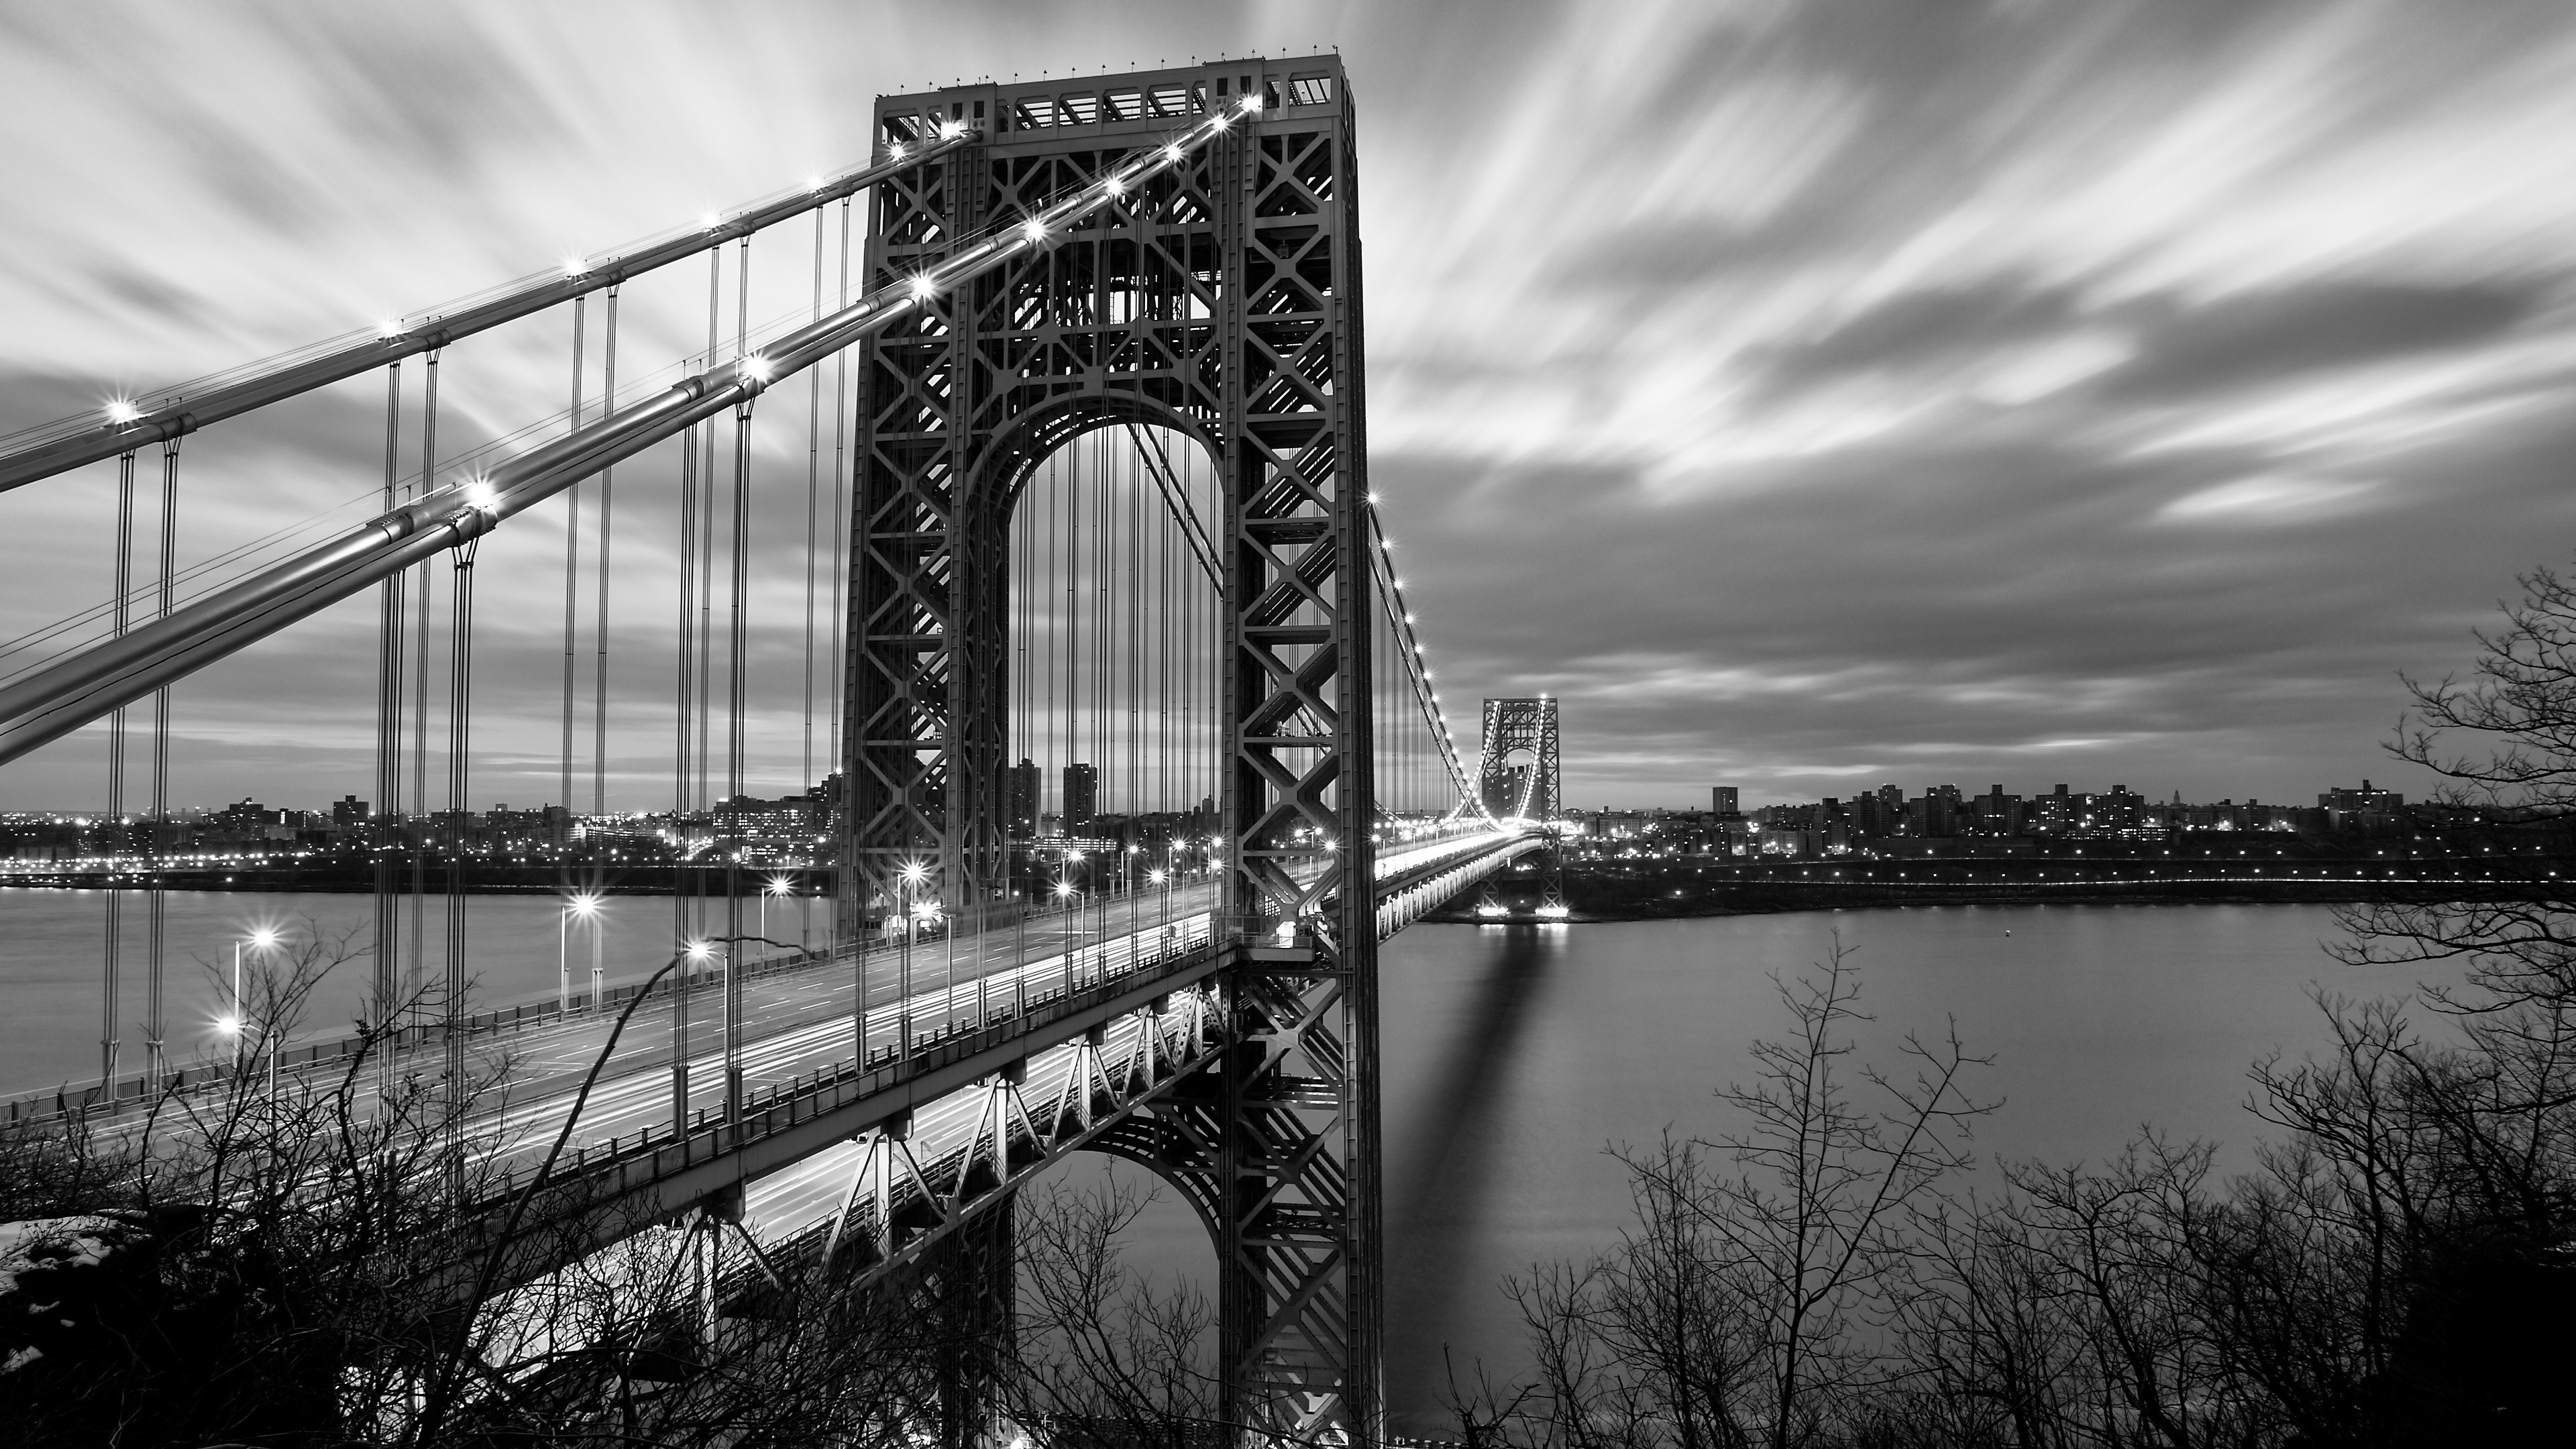 1440x900 Bridge Black And White 1440x900 Resolution Hd 4k Wallpapers Images Backgrounds Photos And Pictures